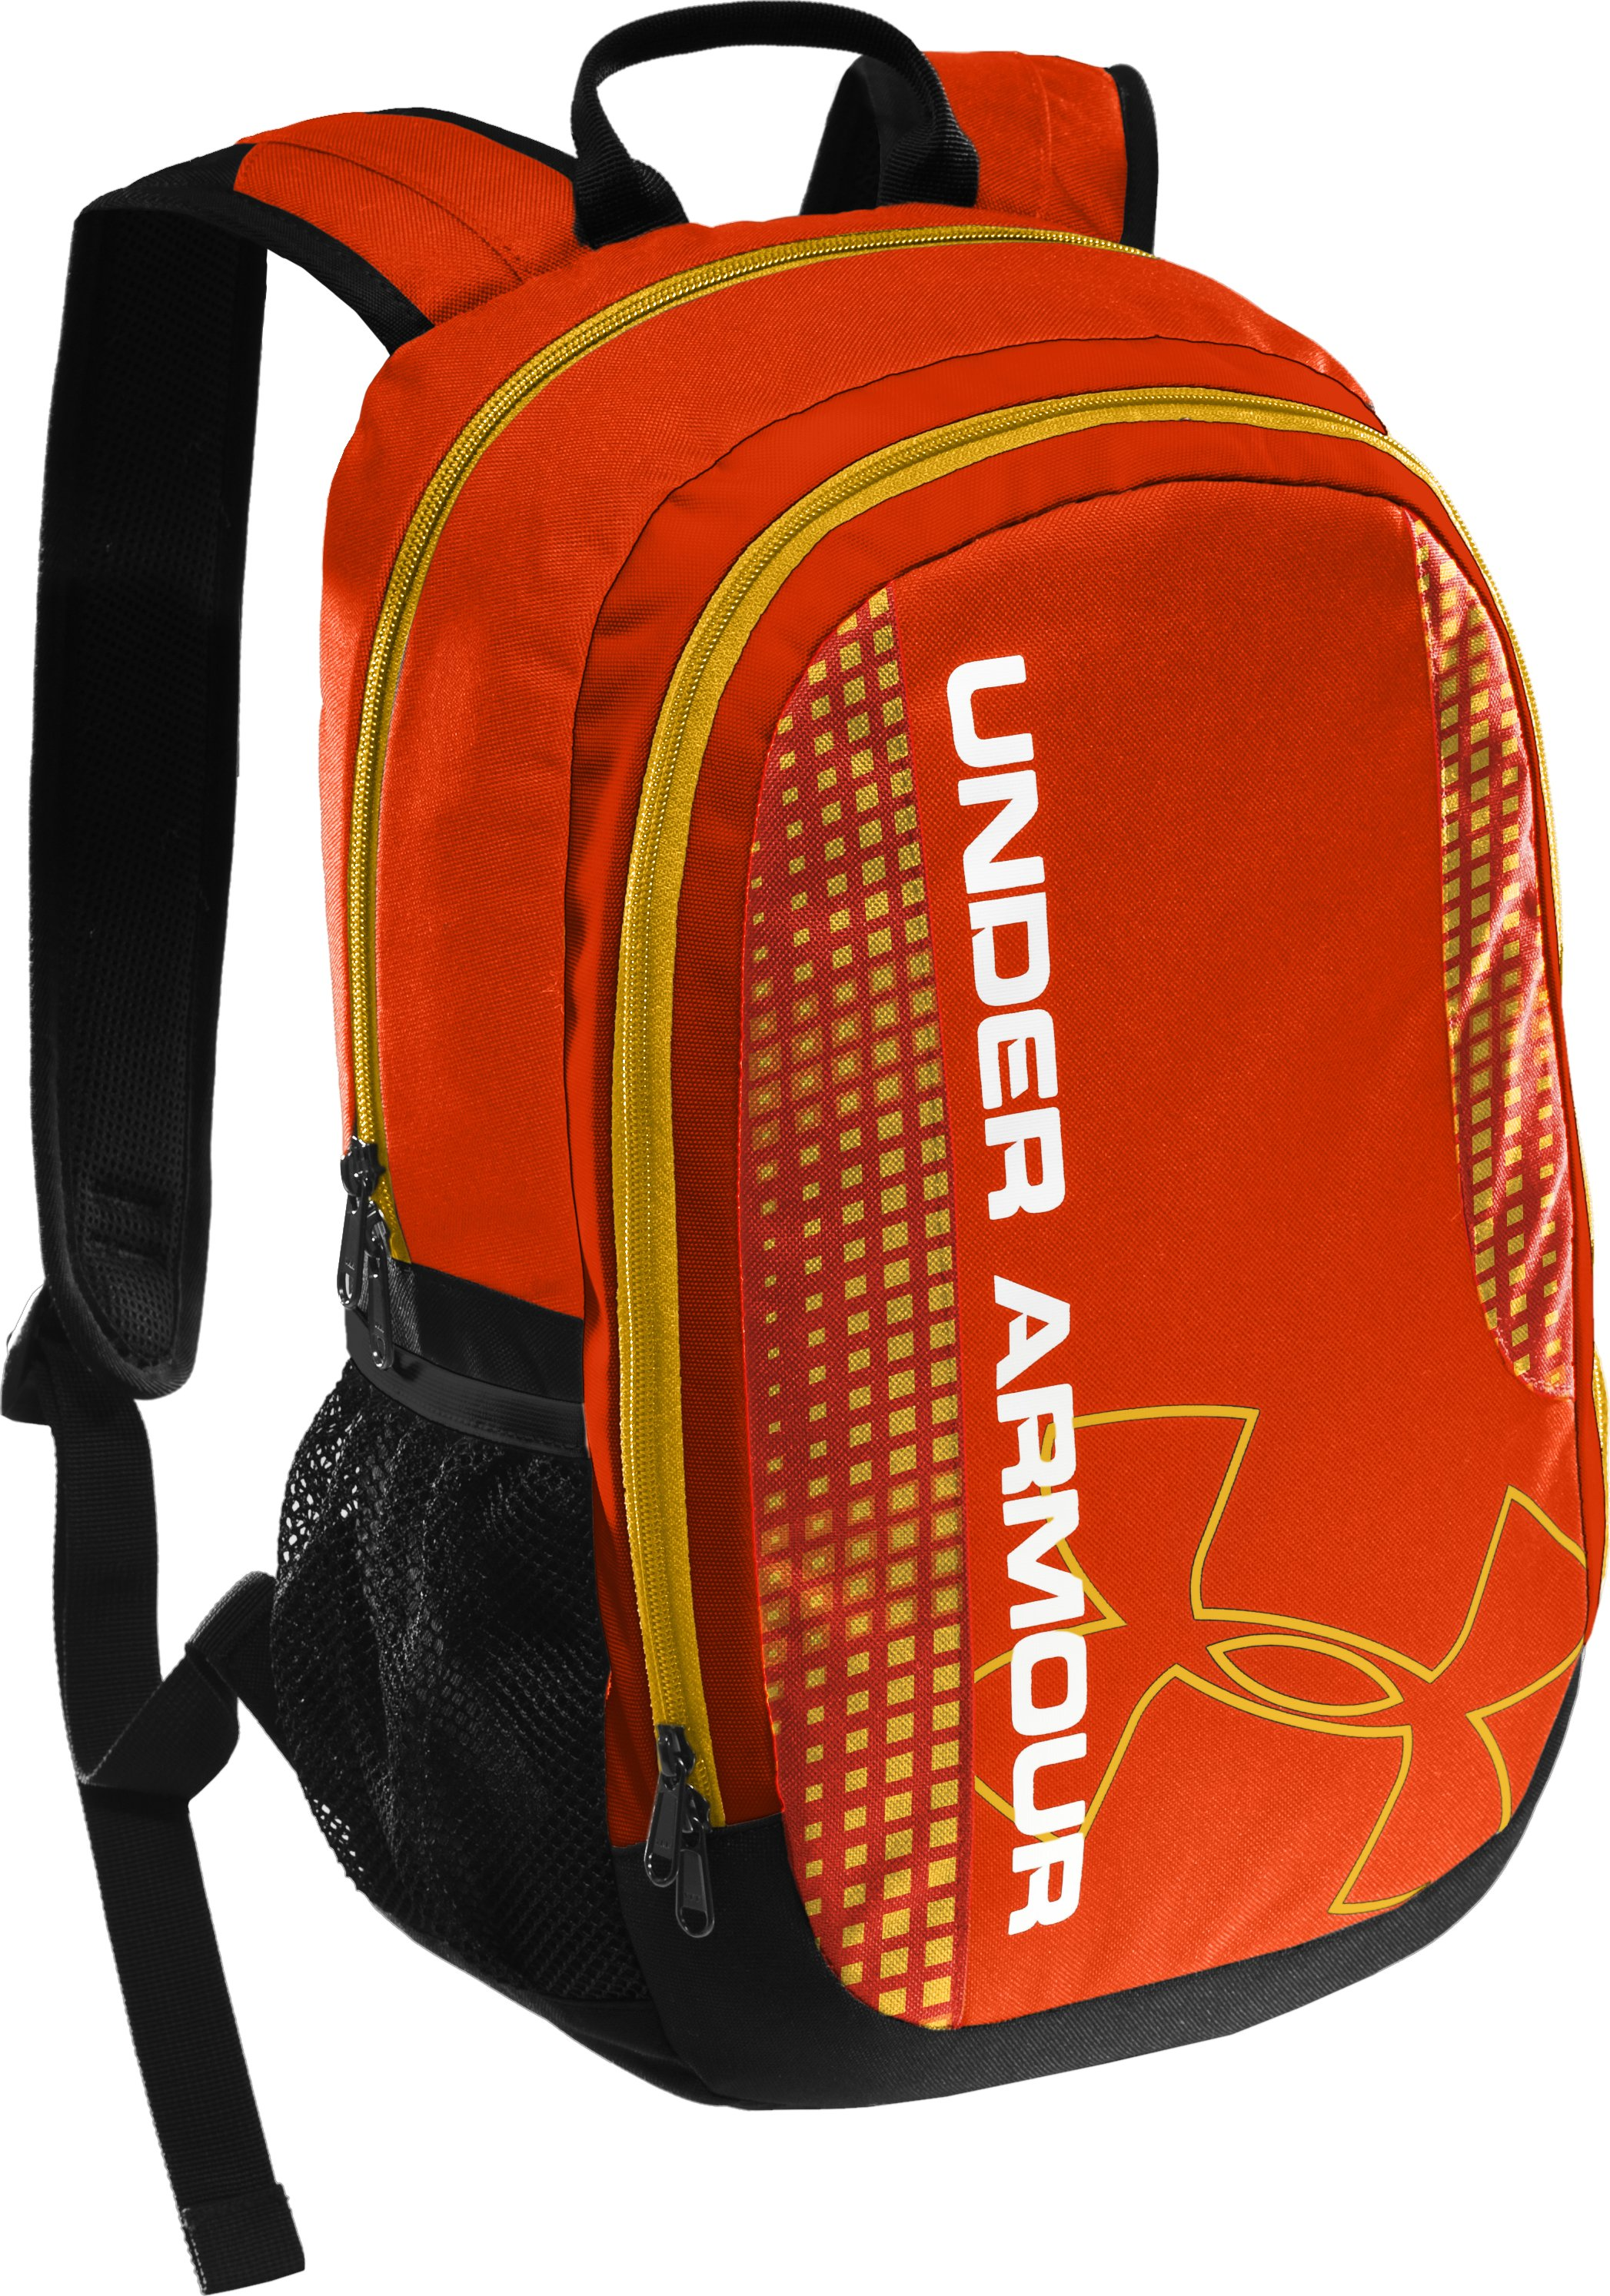 Dauntless Backpack, Dark Orange